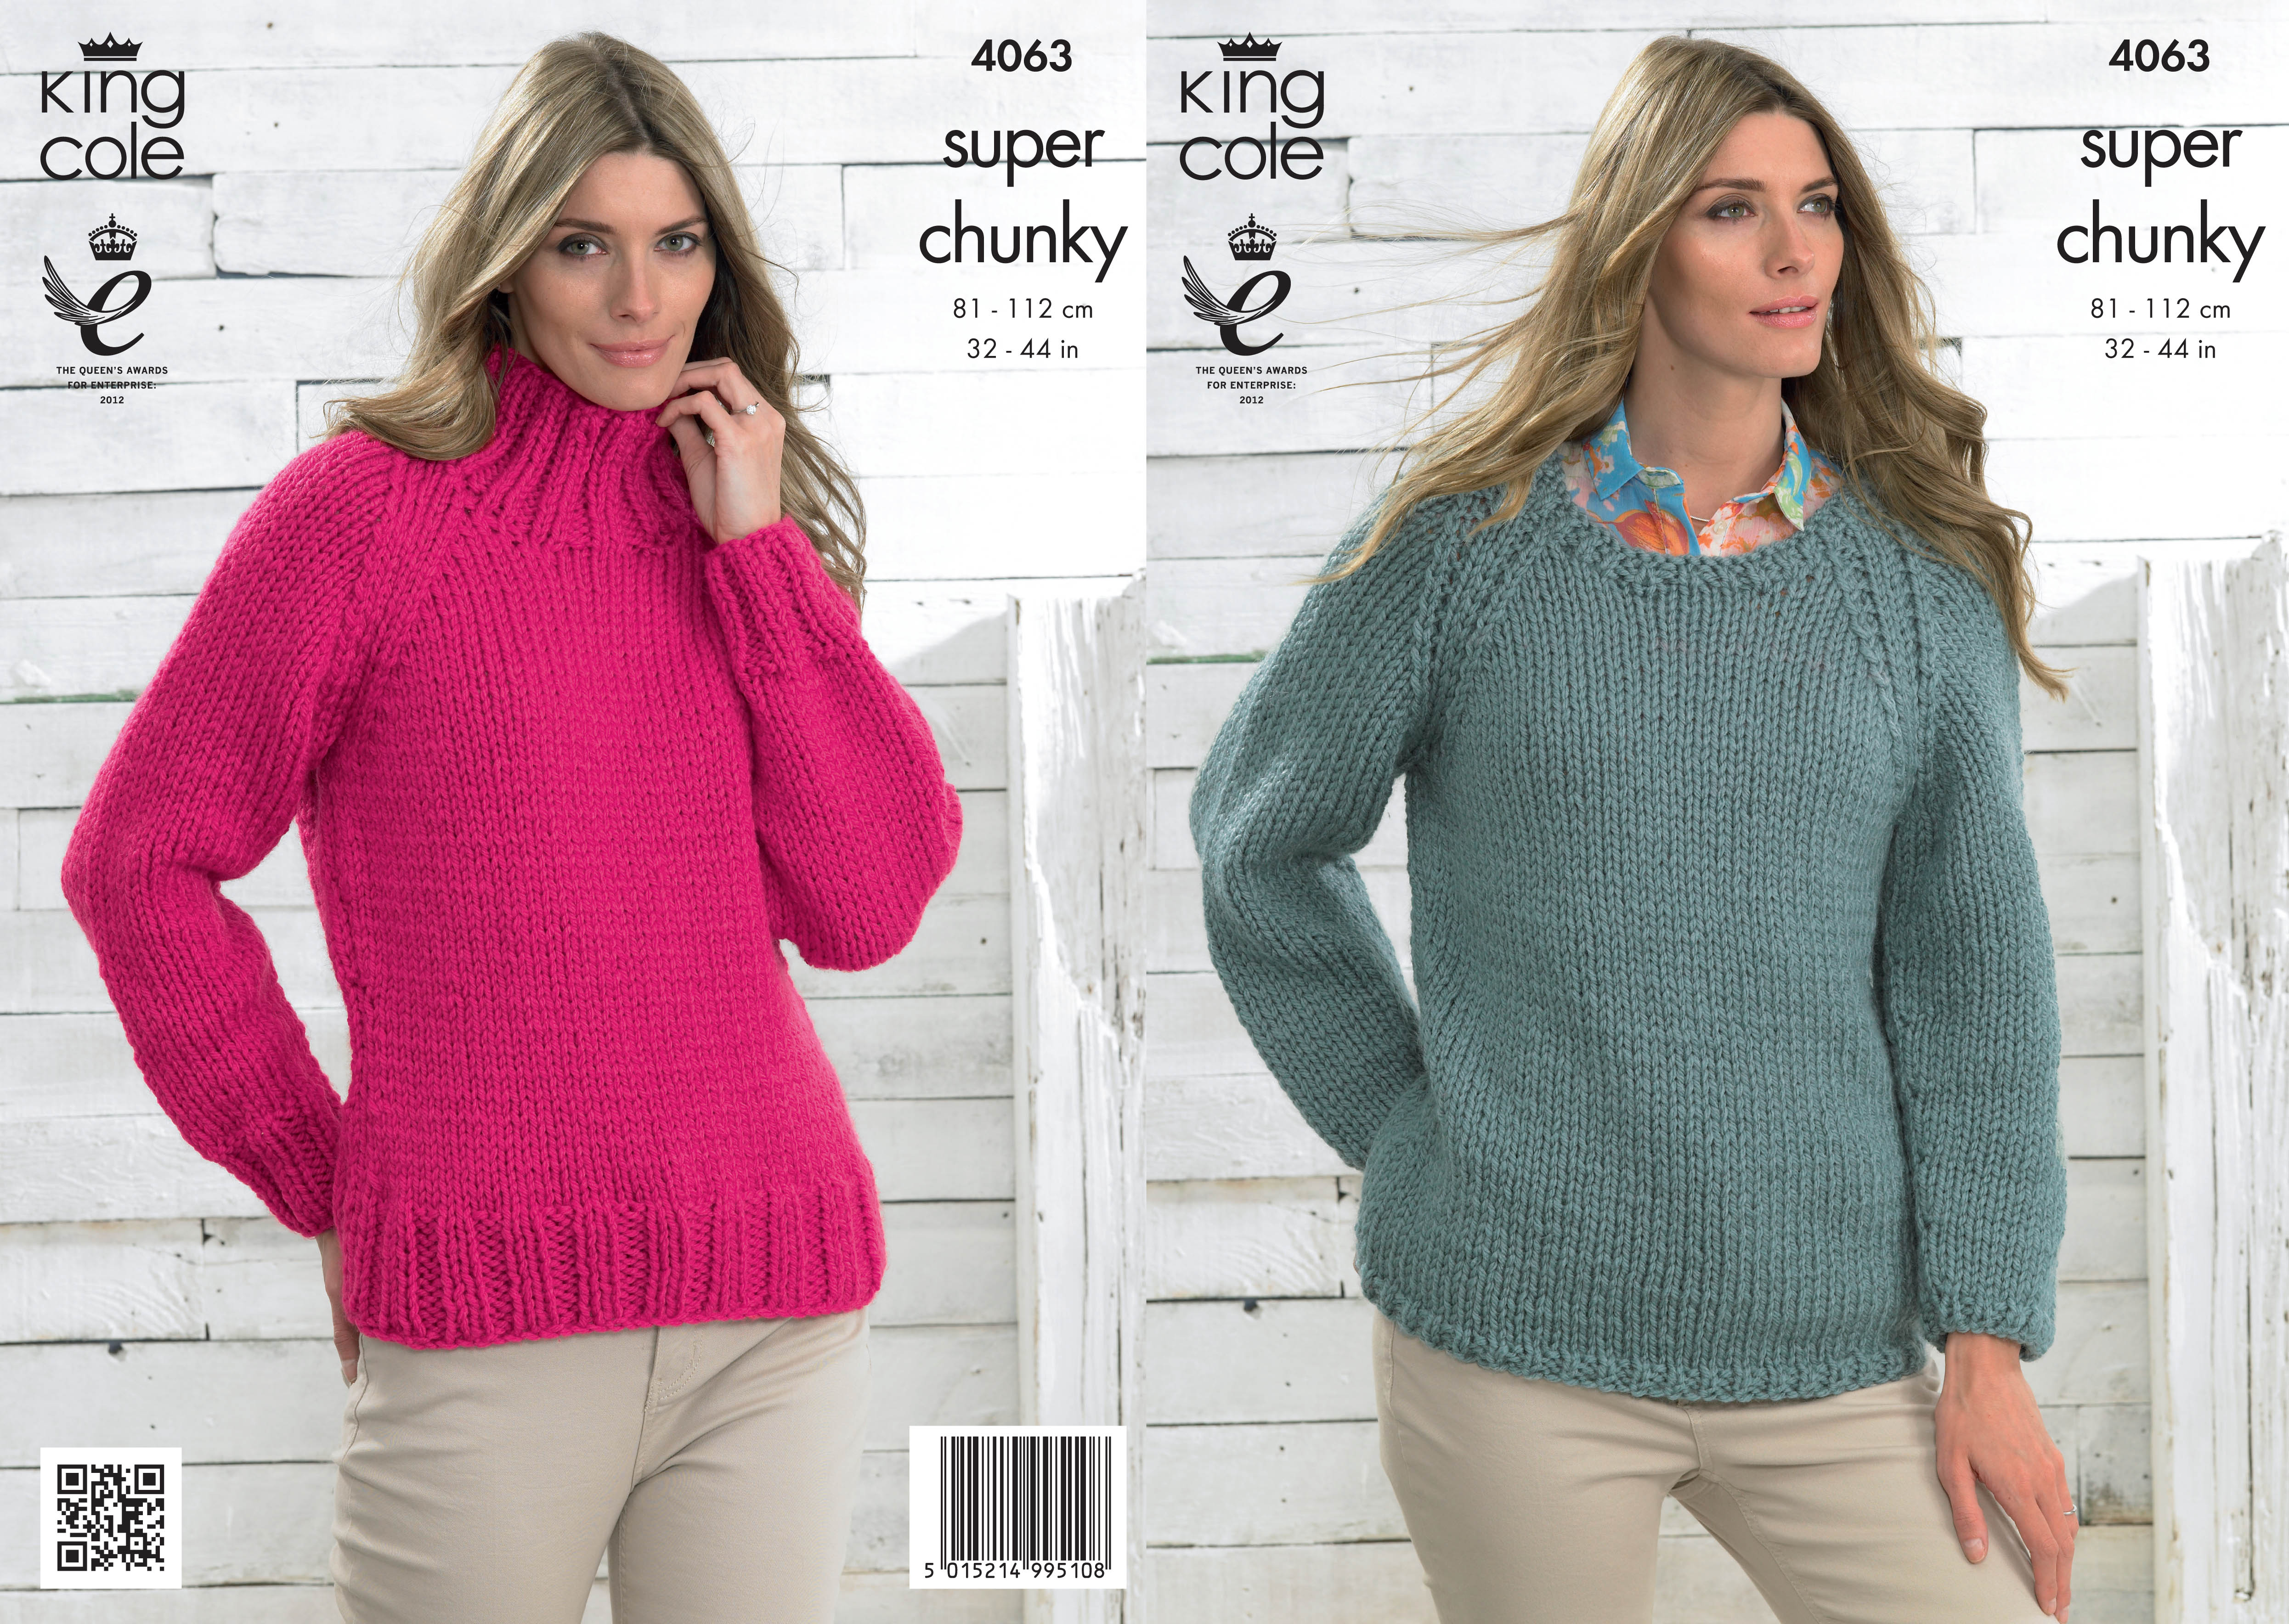 Ladies Jumper Knitting Patterns : Ladies Super Chunky Knitting Pattern King Cole Long Sleeved Sweater Jumper 40...